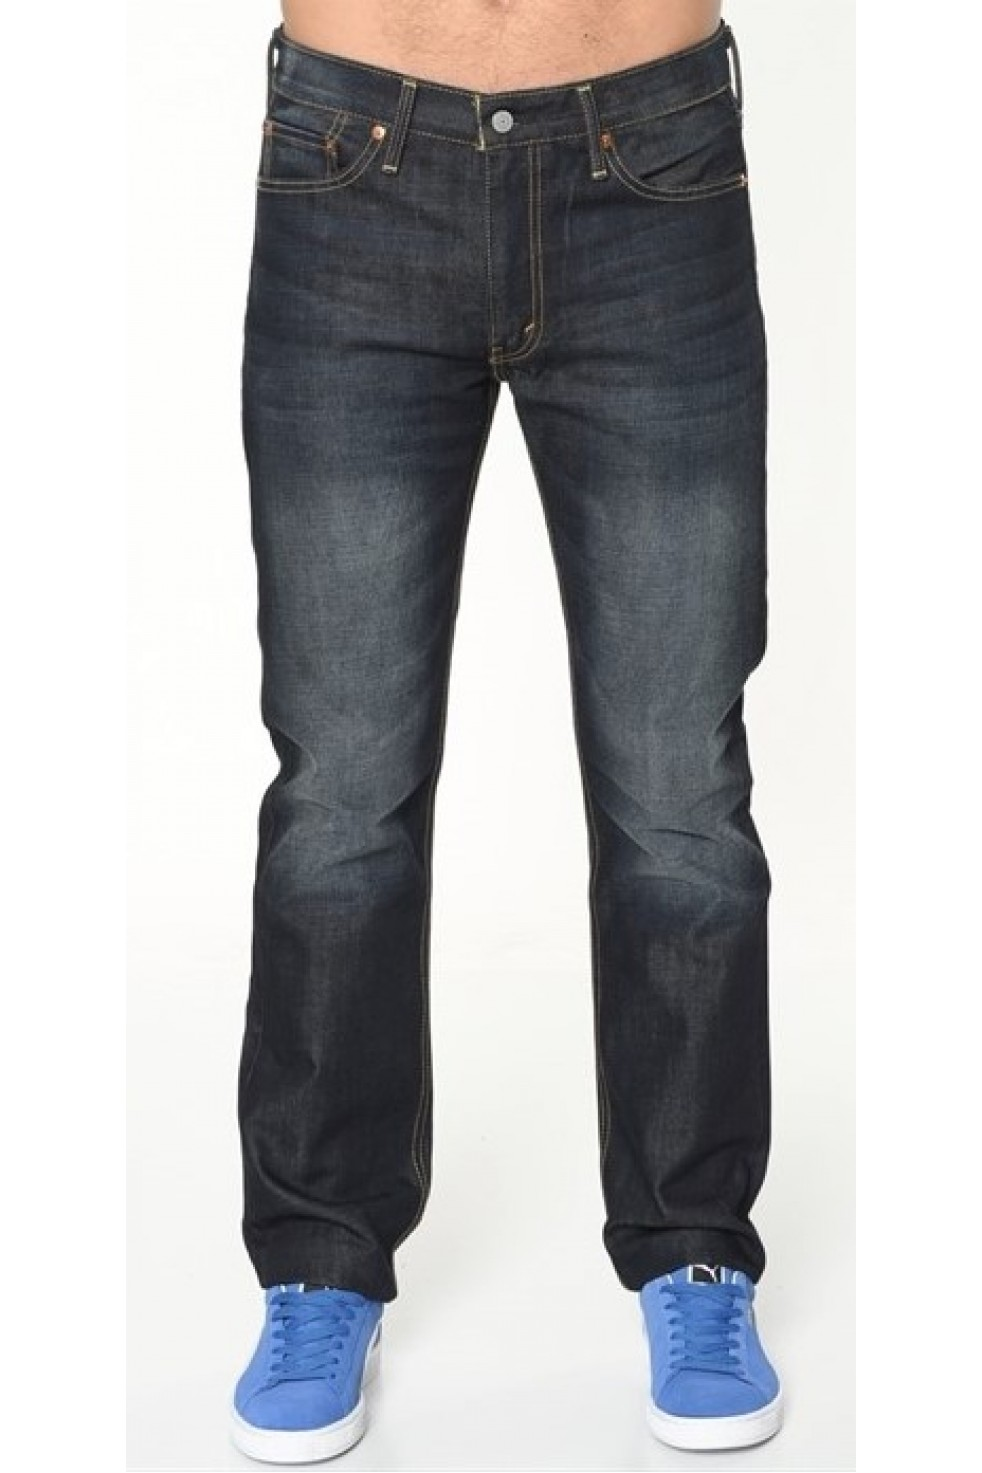 Levis-Erkek-Jean-Pantolon-513-Slim-Straight-Fit-08513-0582